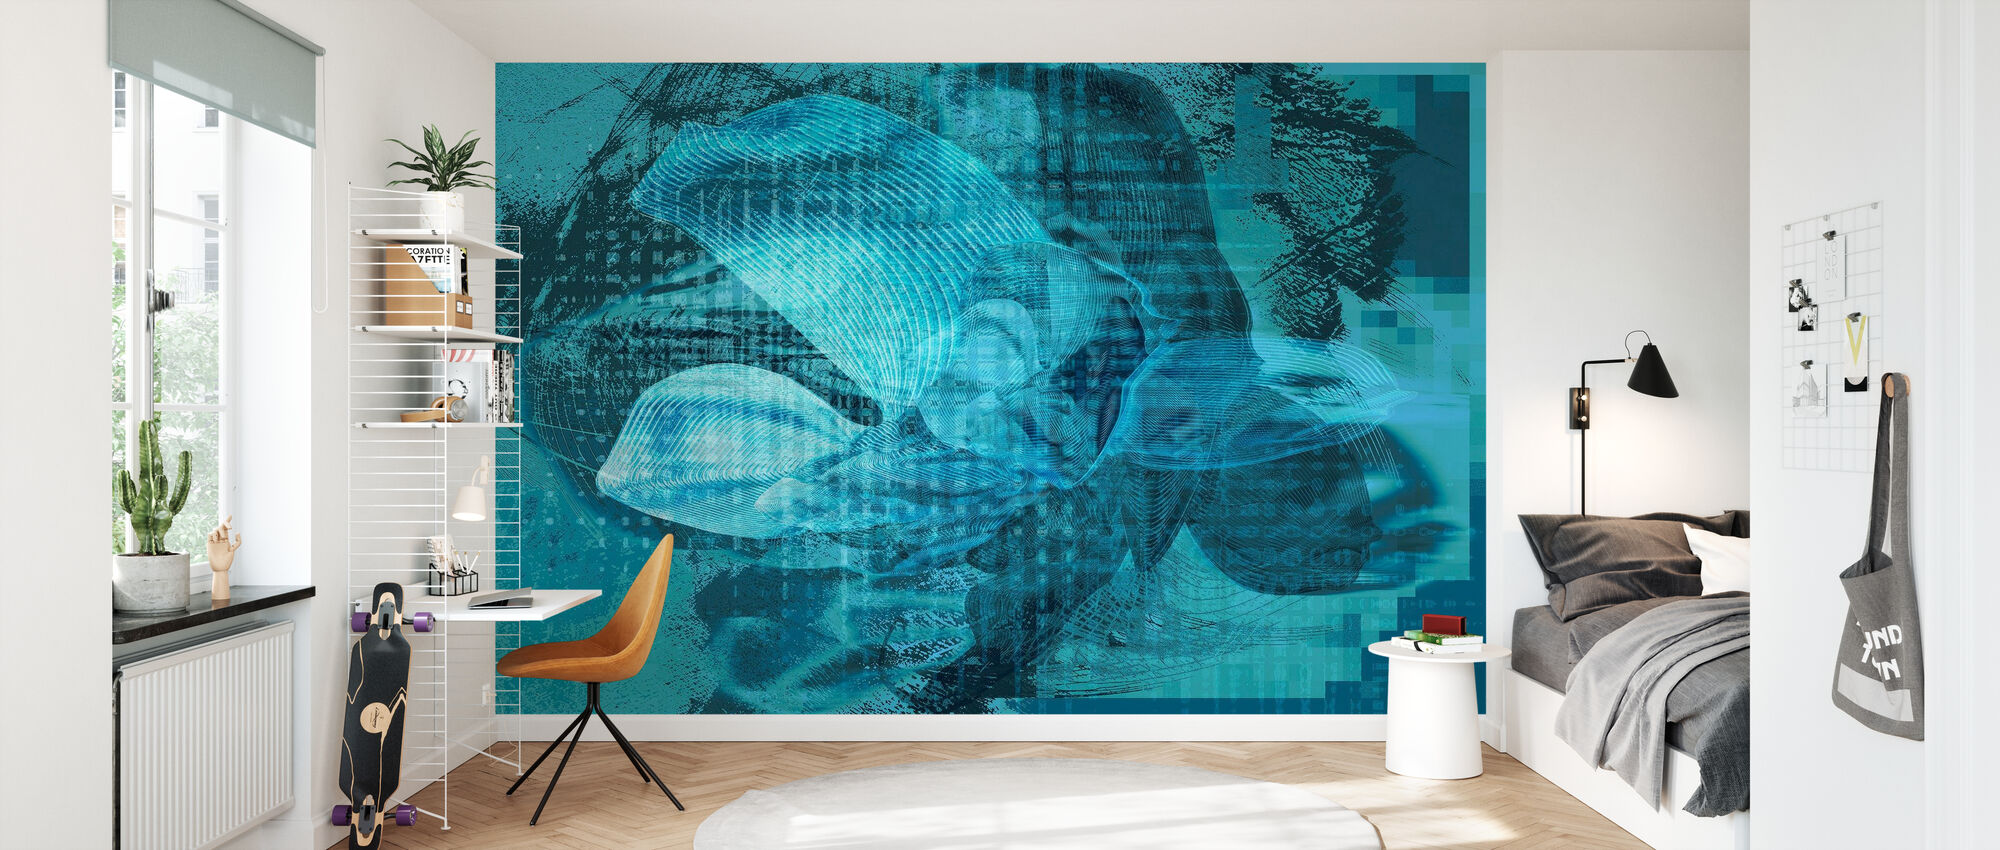 Orchid Chaos - Blue Green - Wallpaper - Kids Room